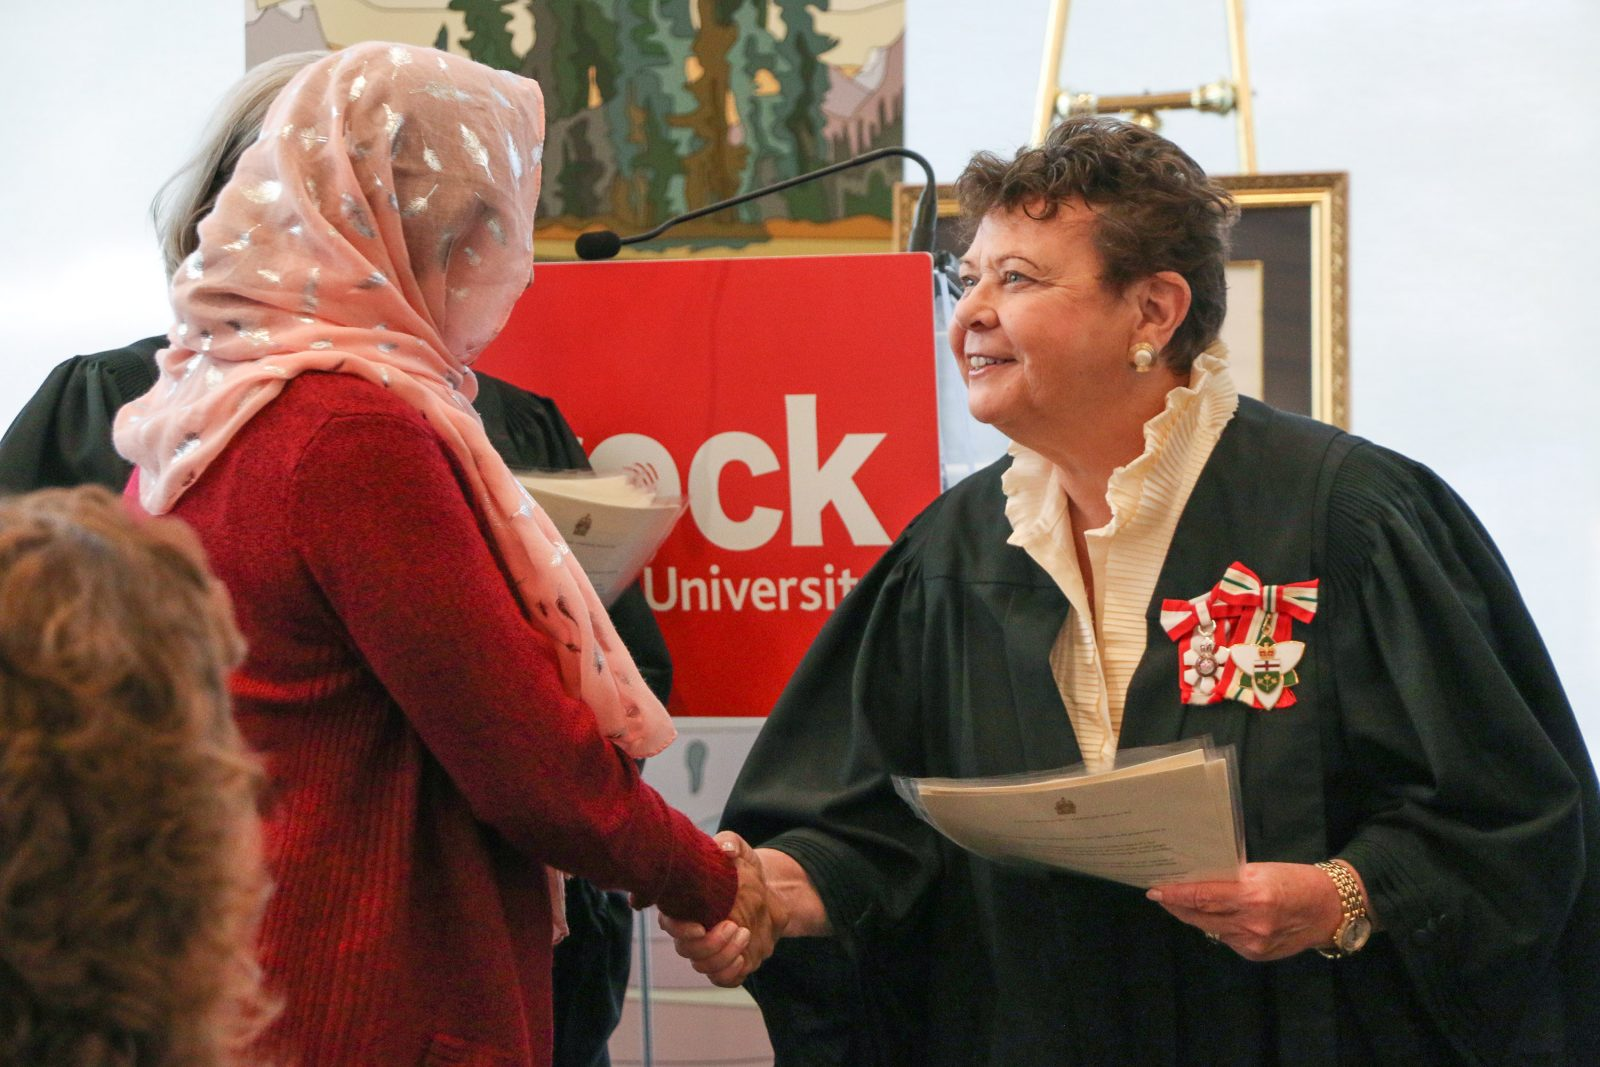 New Canadians from around the world will get their